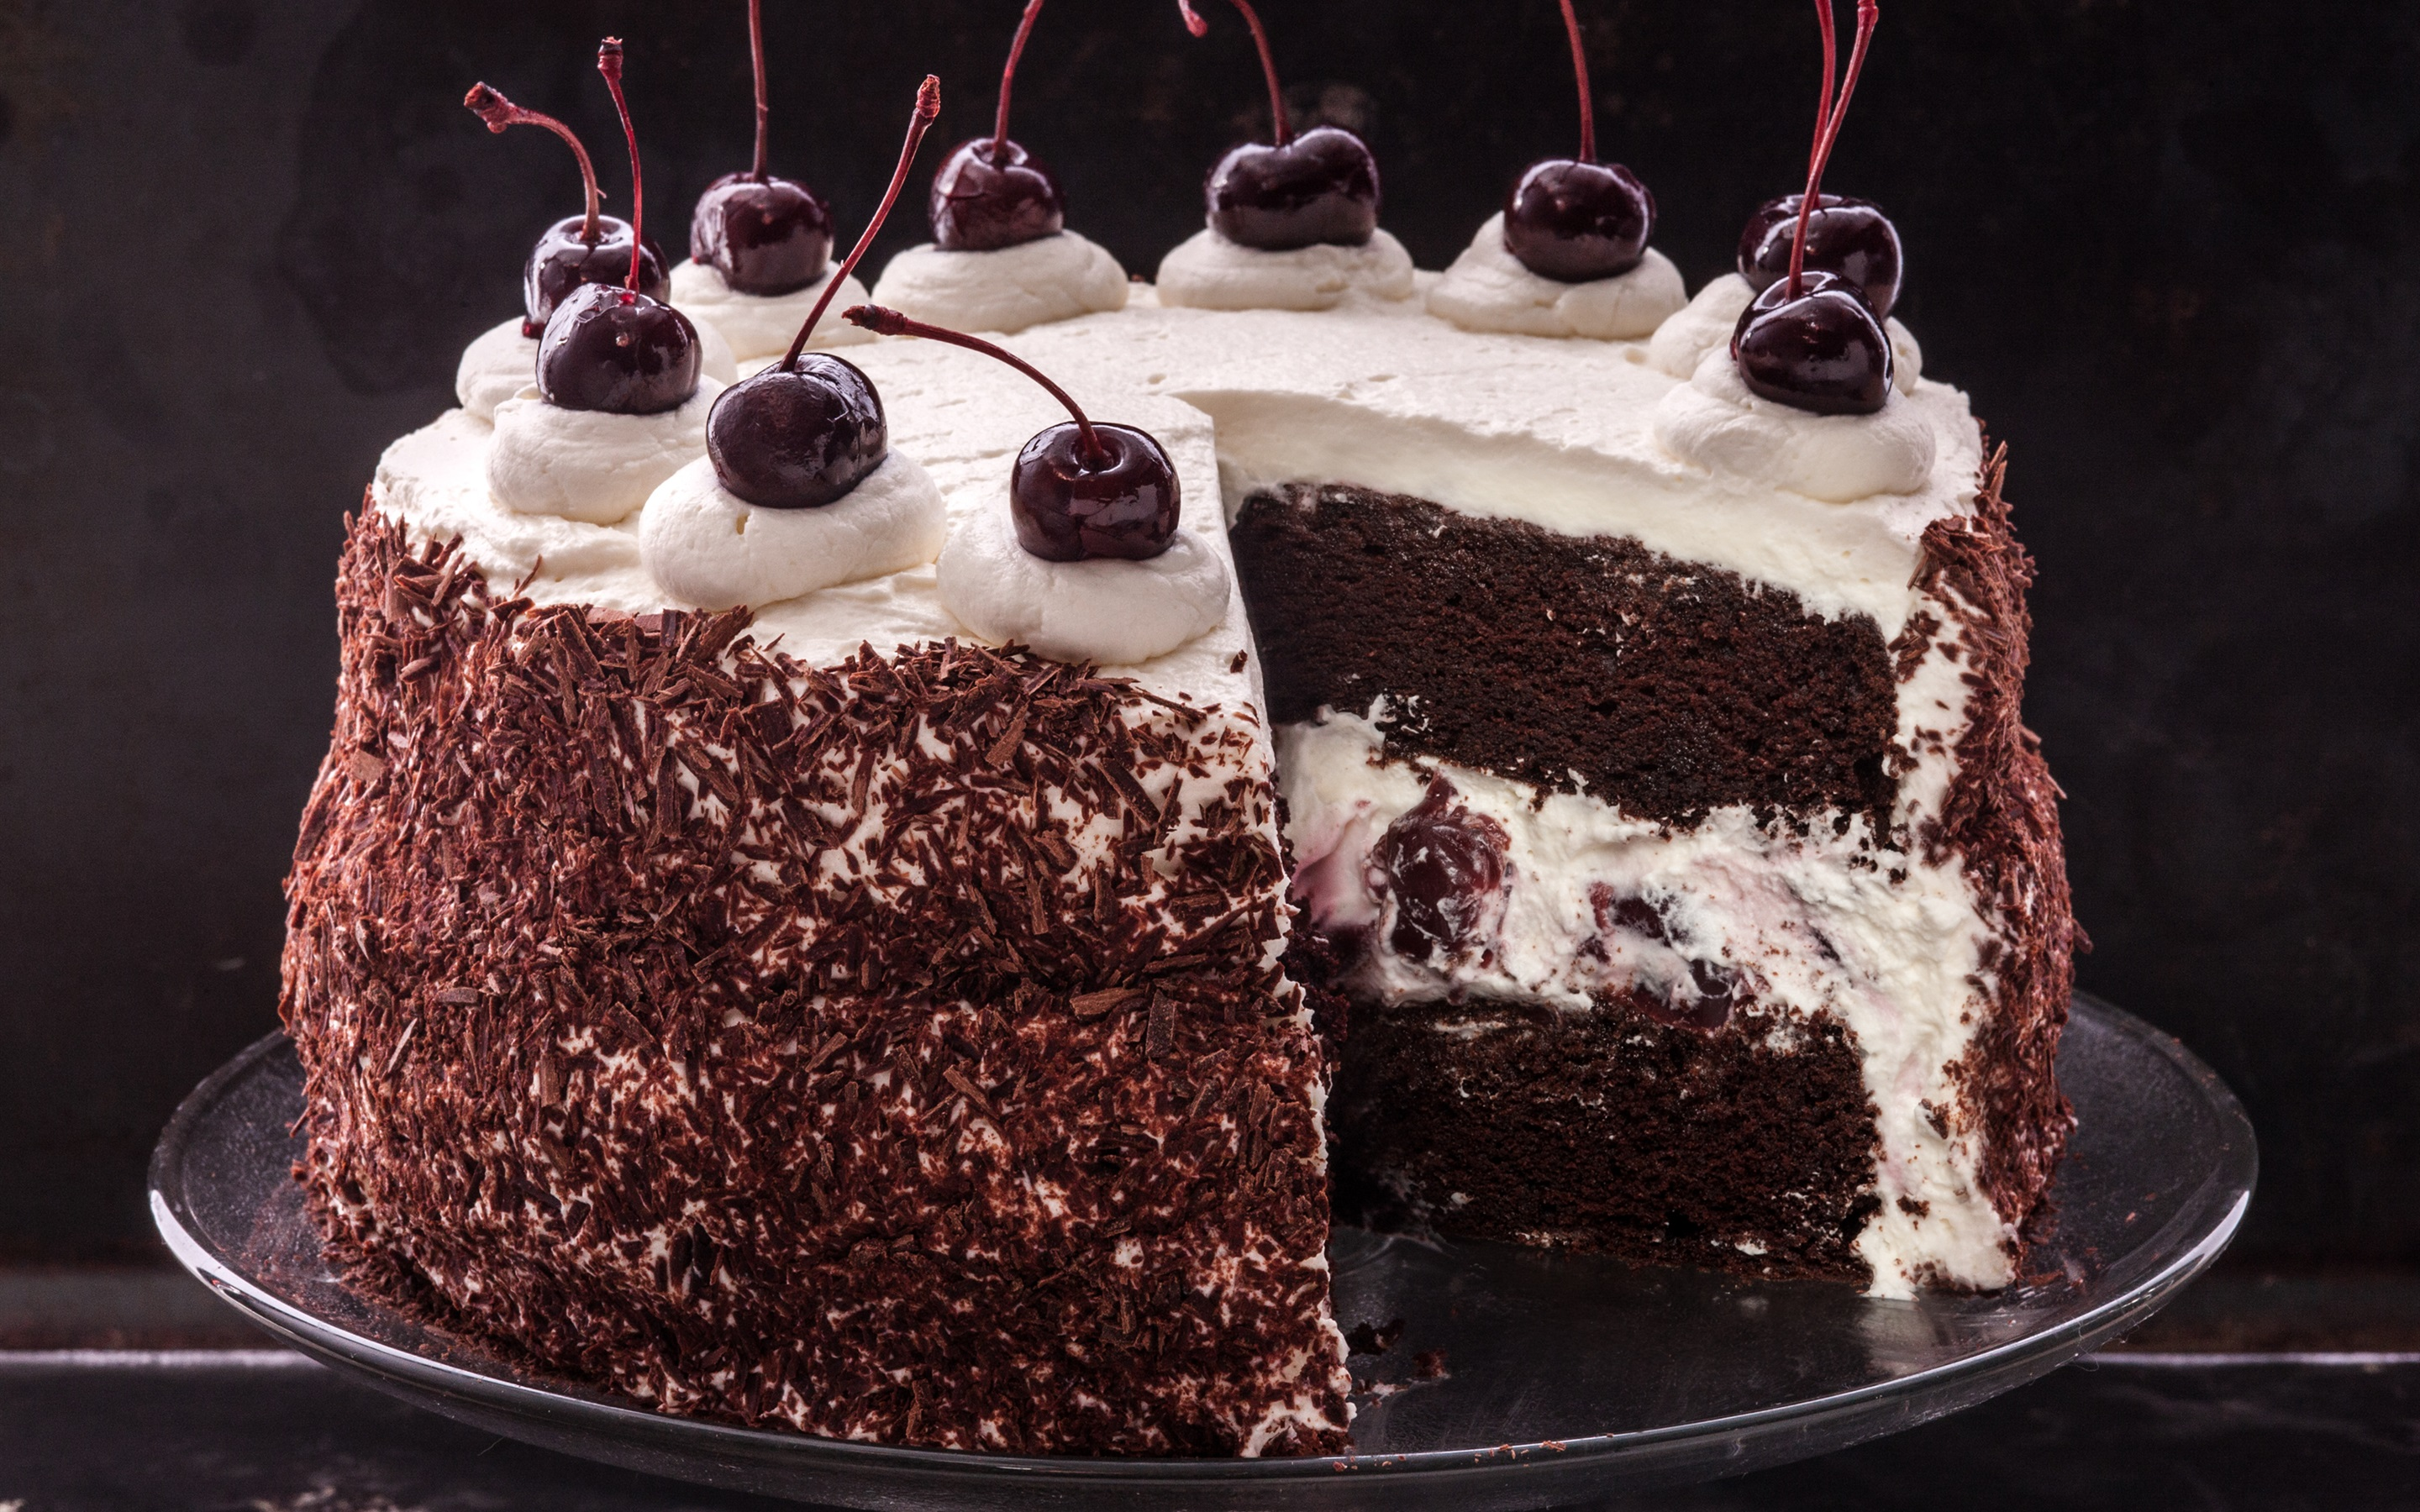 Wallpaper Black Forest Cake Chocolate Cherries 2880x1800 Hd